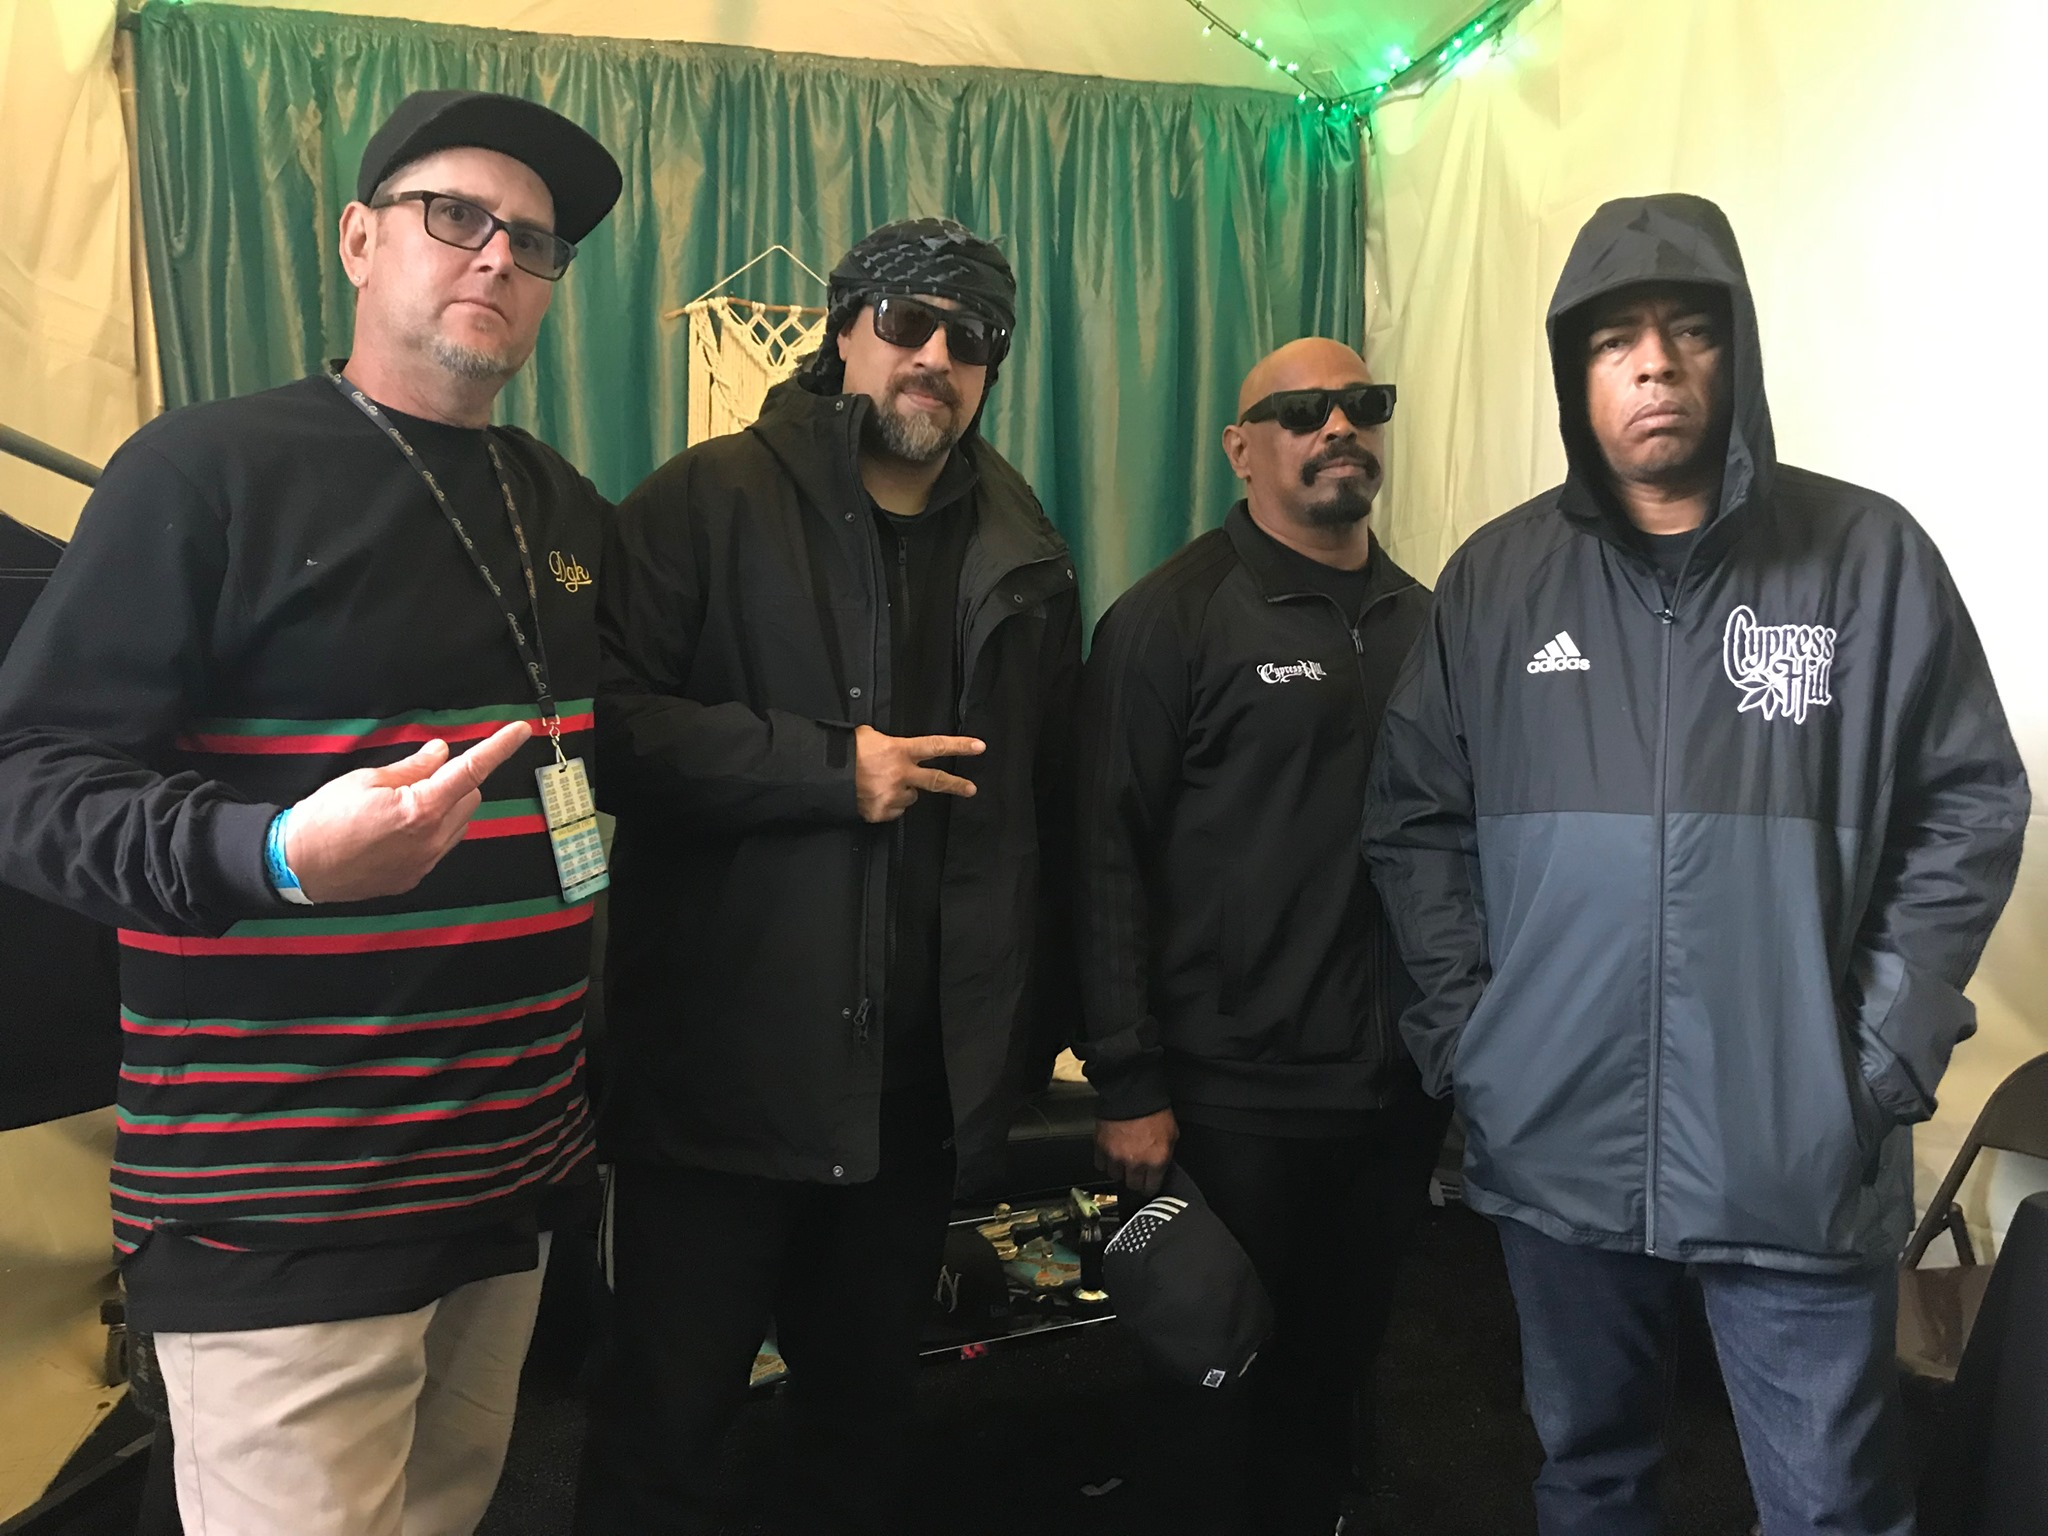 Back stage with the one and only Cypress Hill